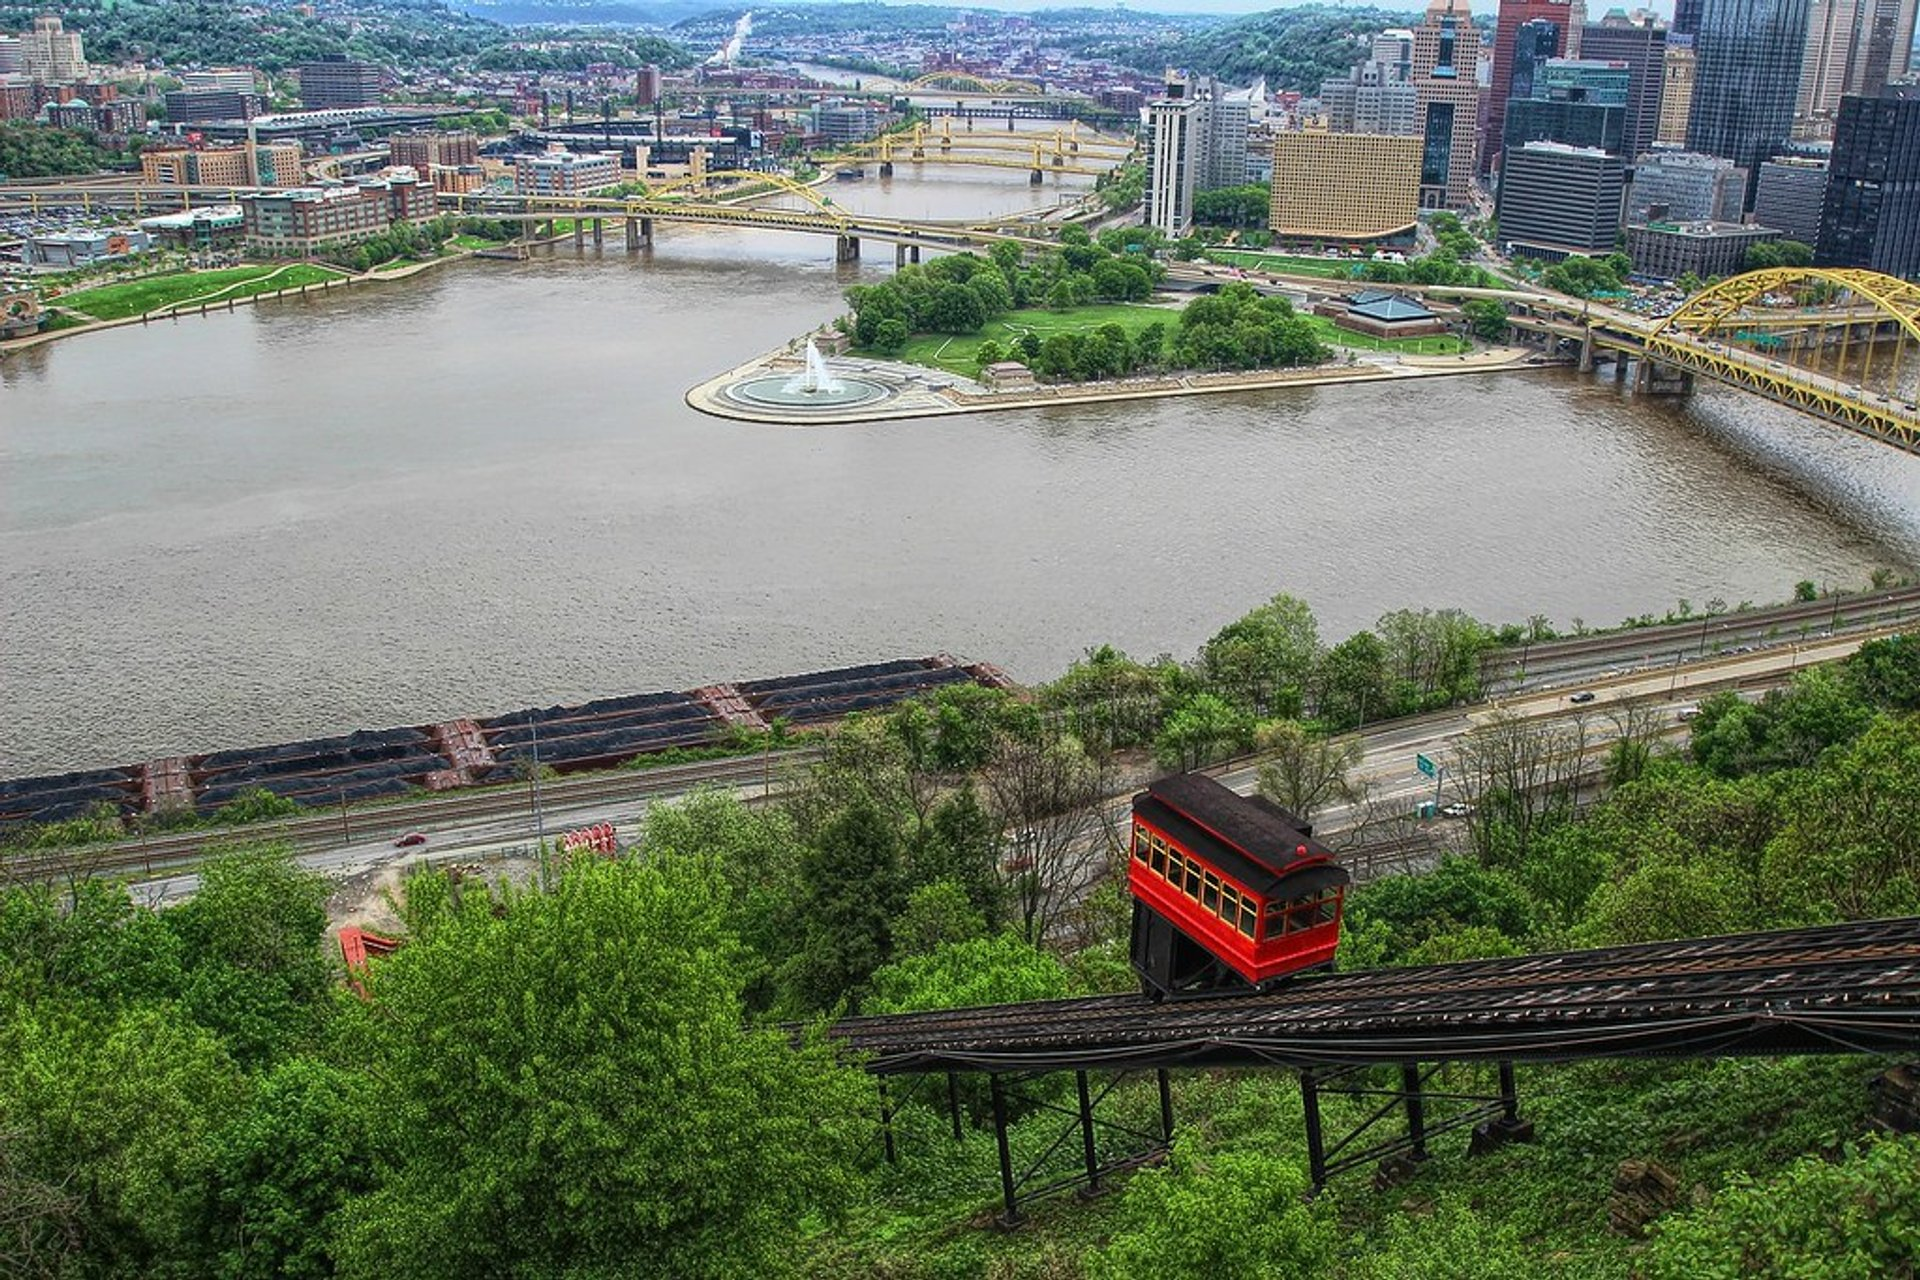 The Duquesne Incline 2020